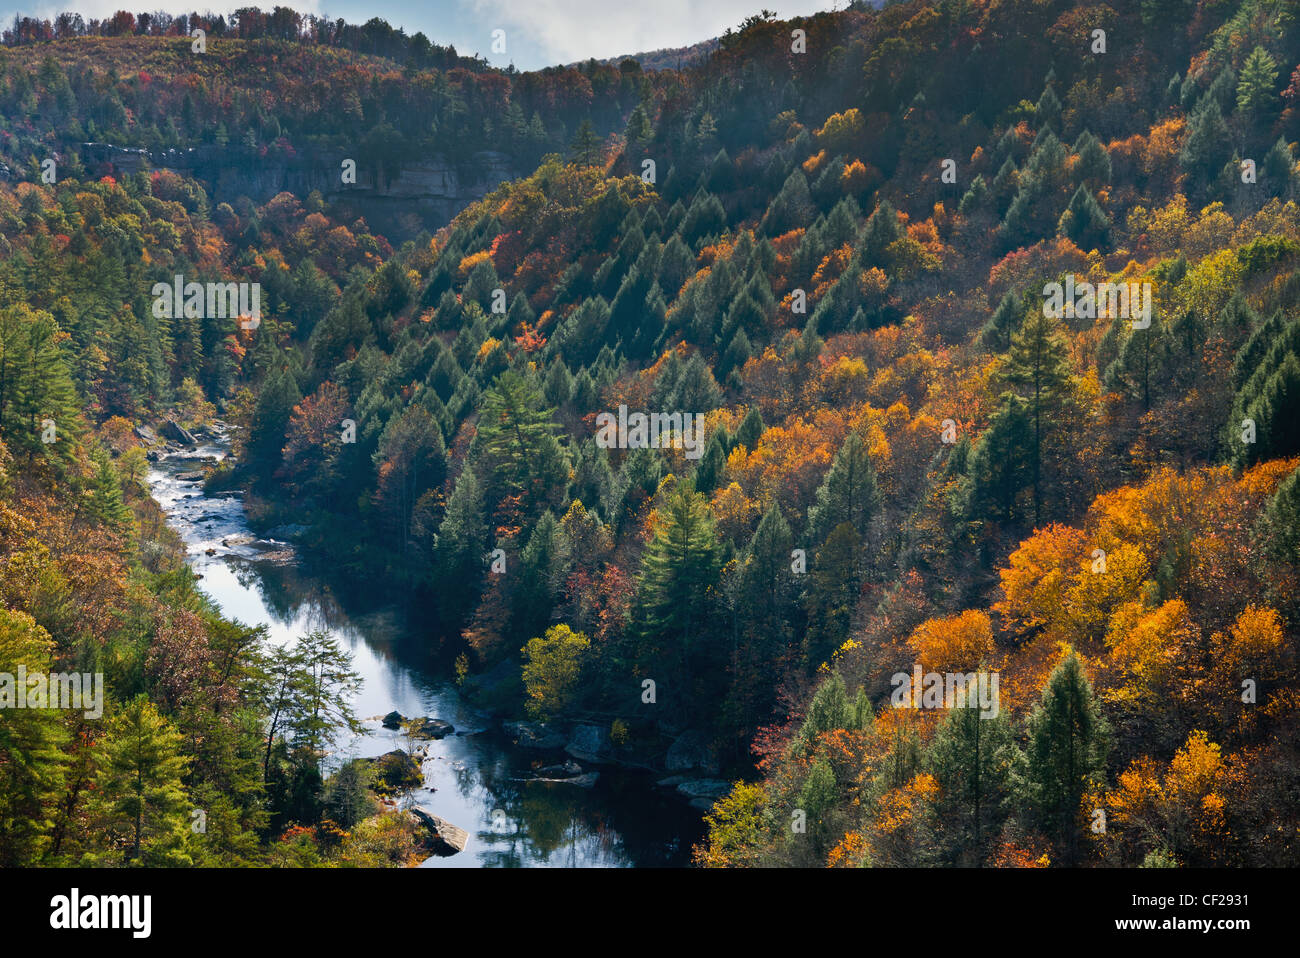 View of river at Obed Wild and Scenic River. Stock Photo